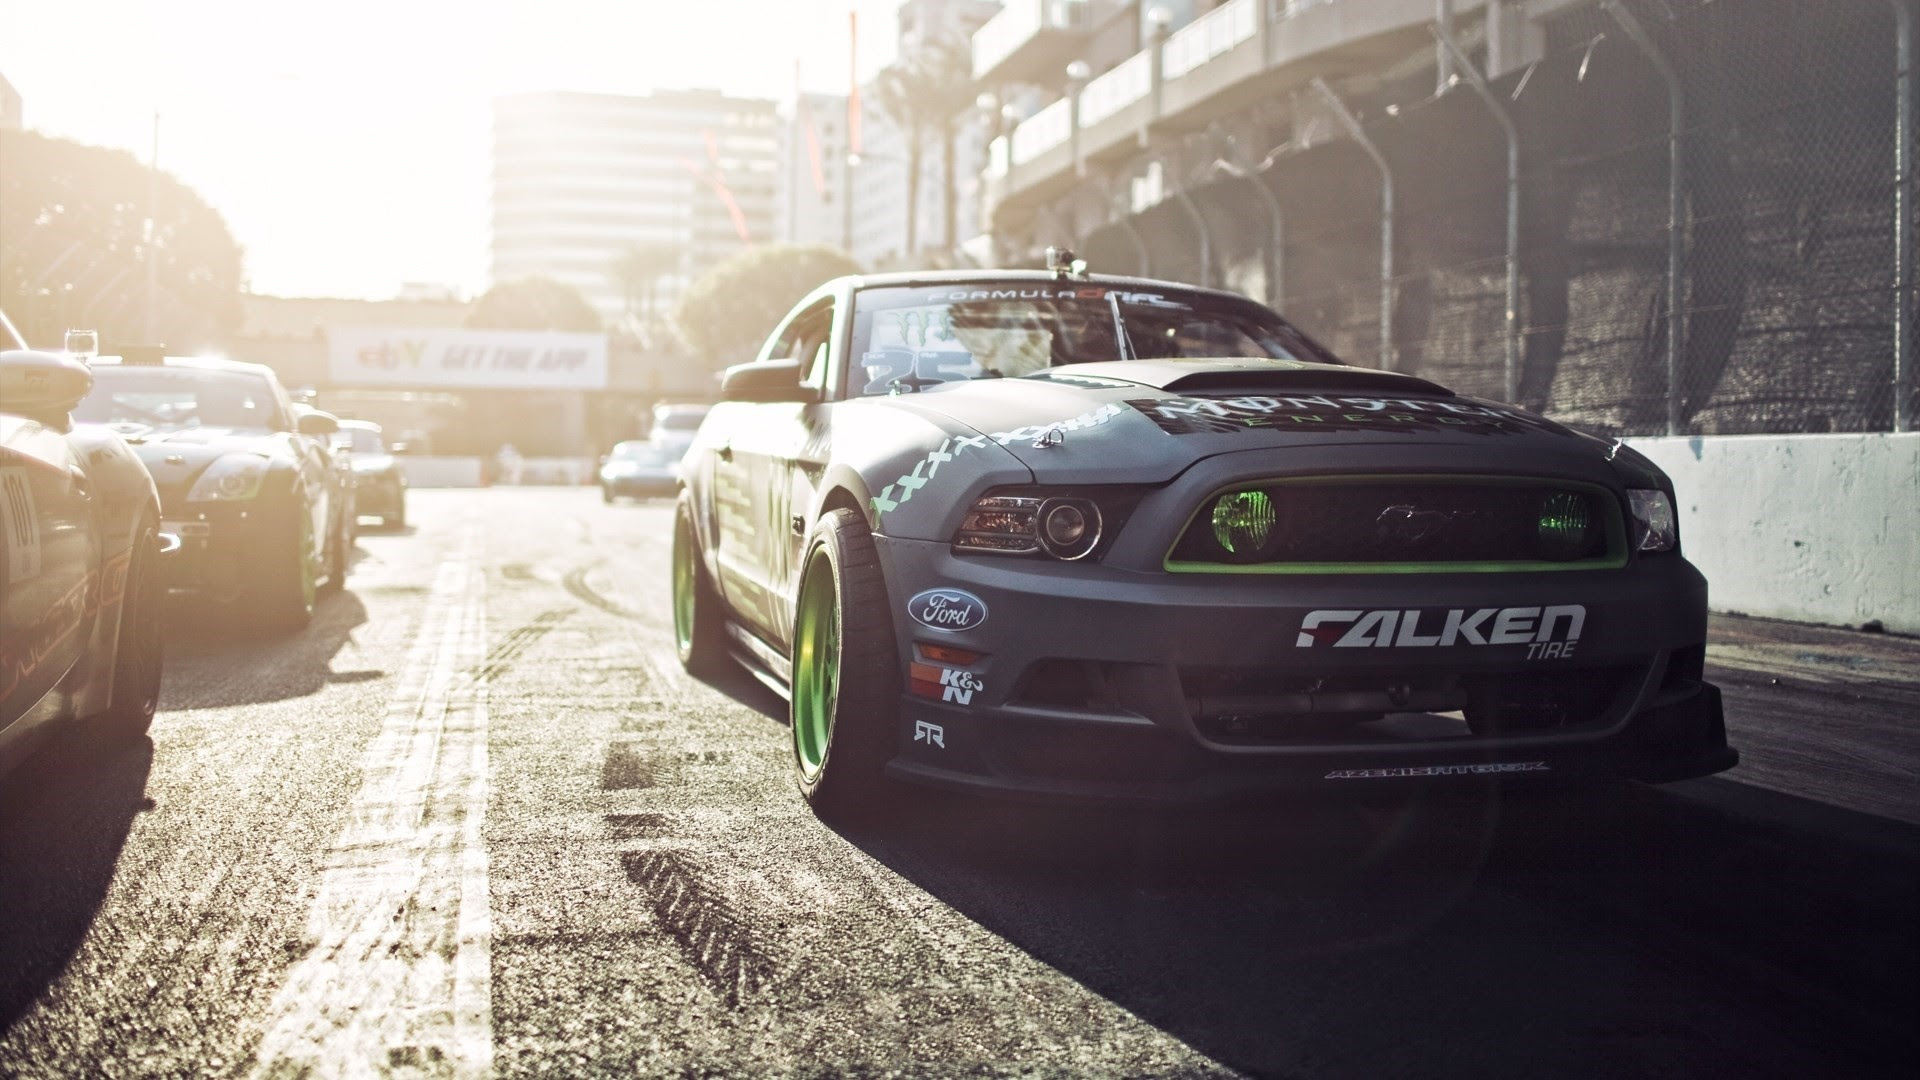 Awesome Hd Drift Car Wallpapers 1080p Photos